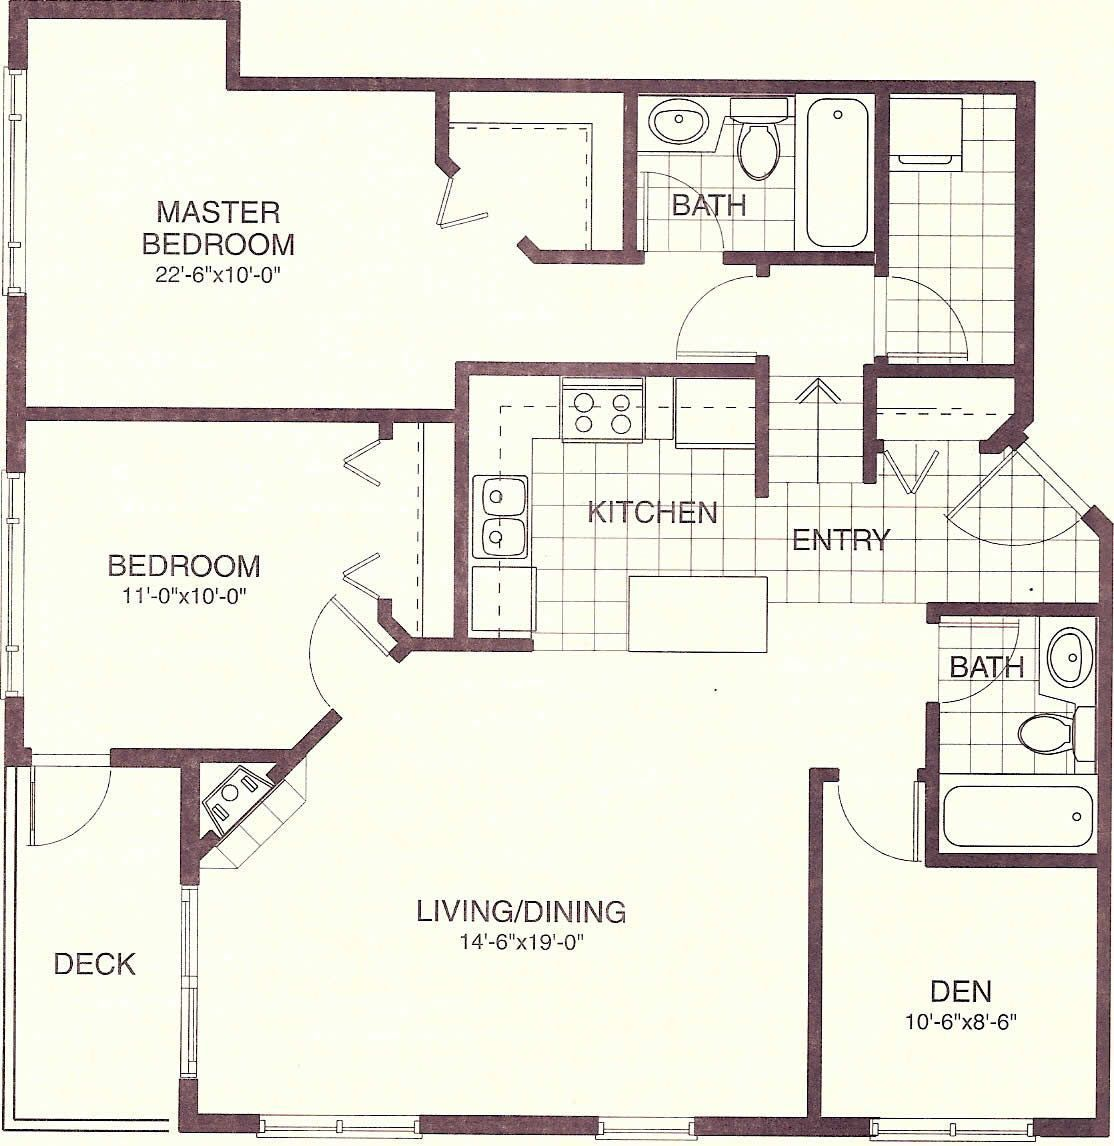 House Plans 900 Sq Ft home examples in 2020 Small house